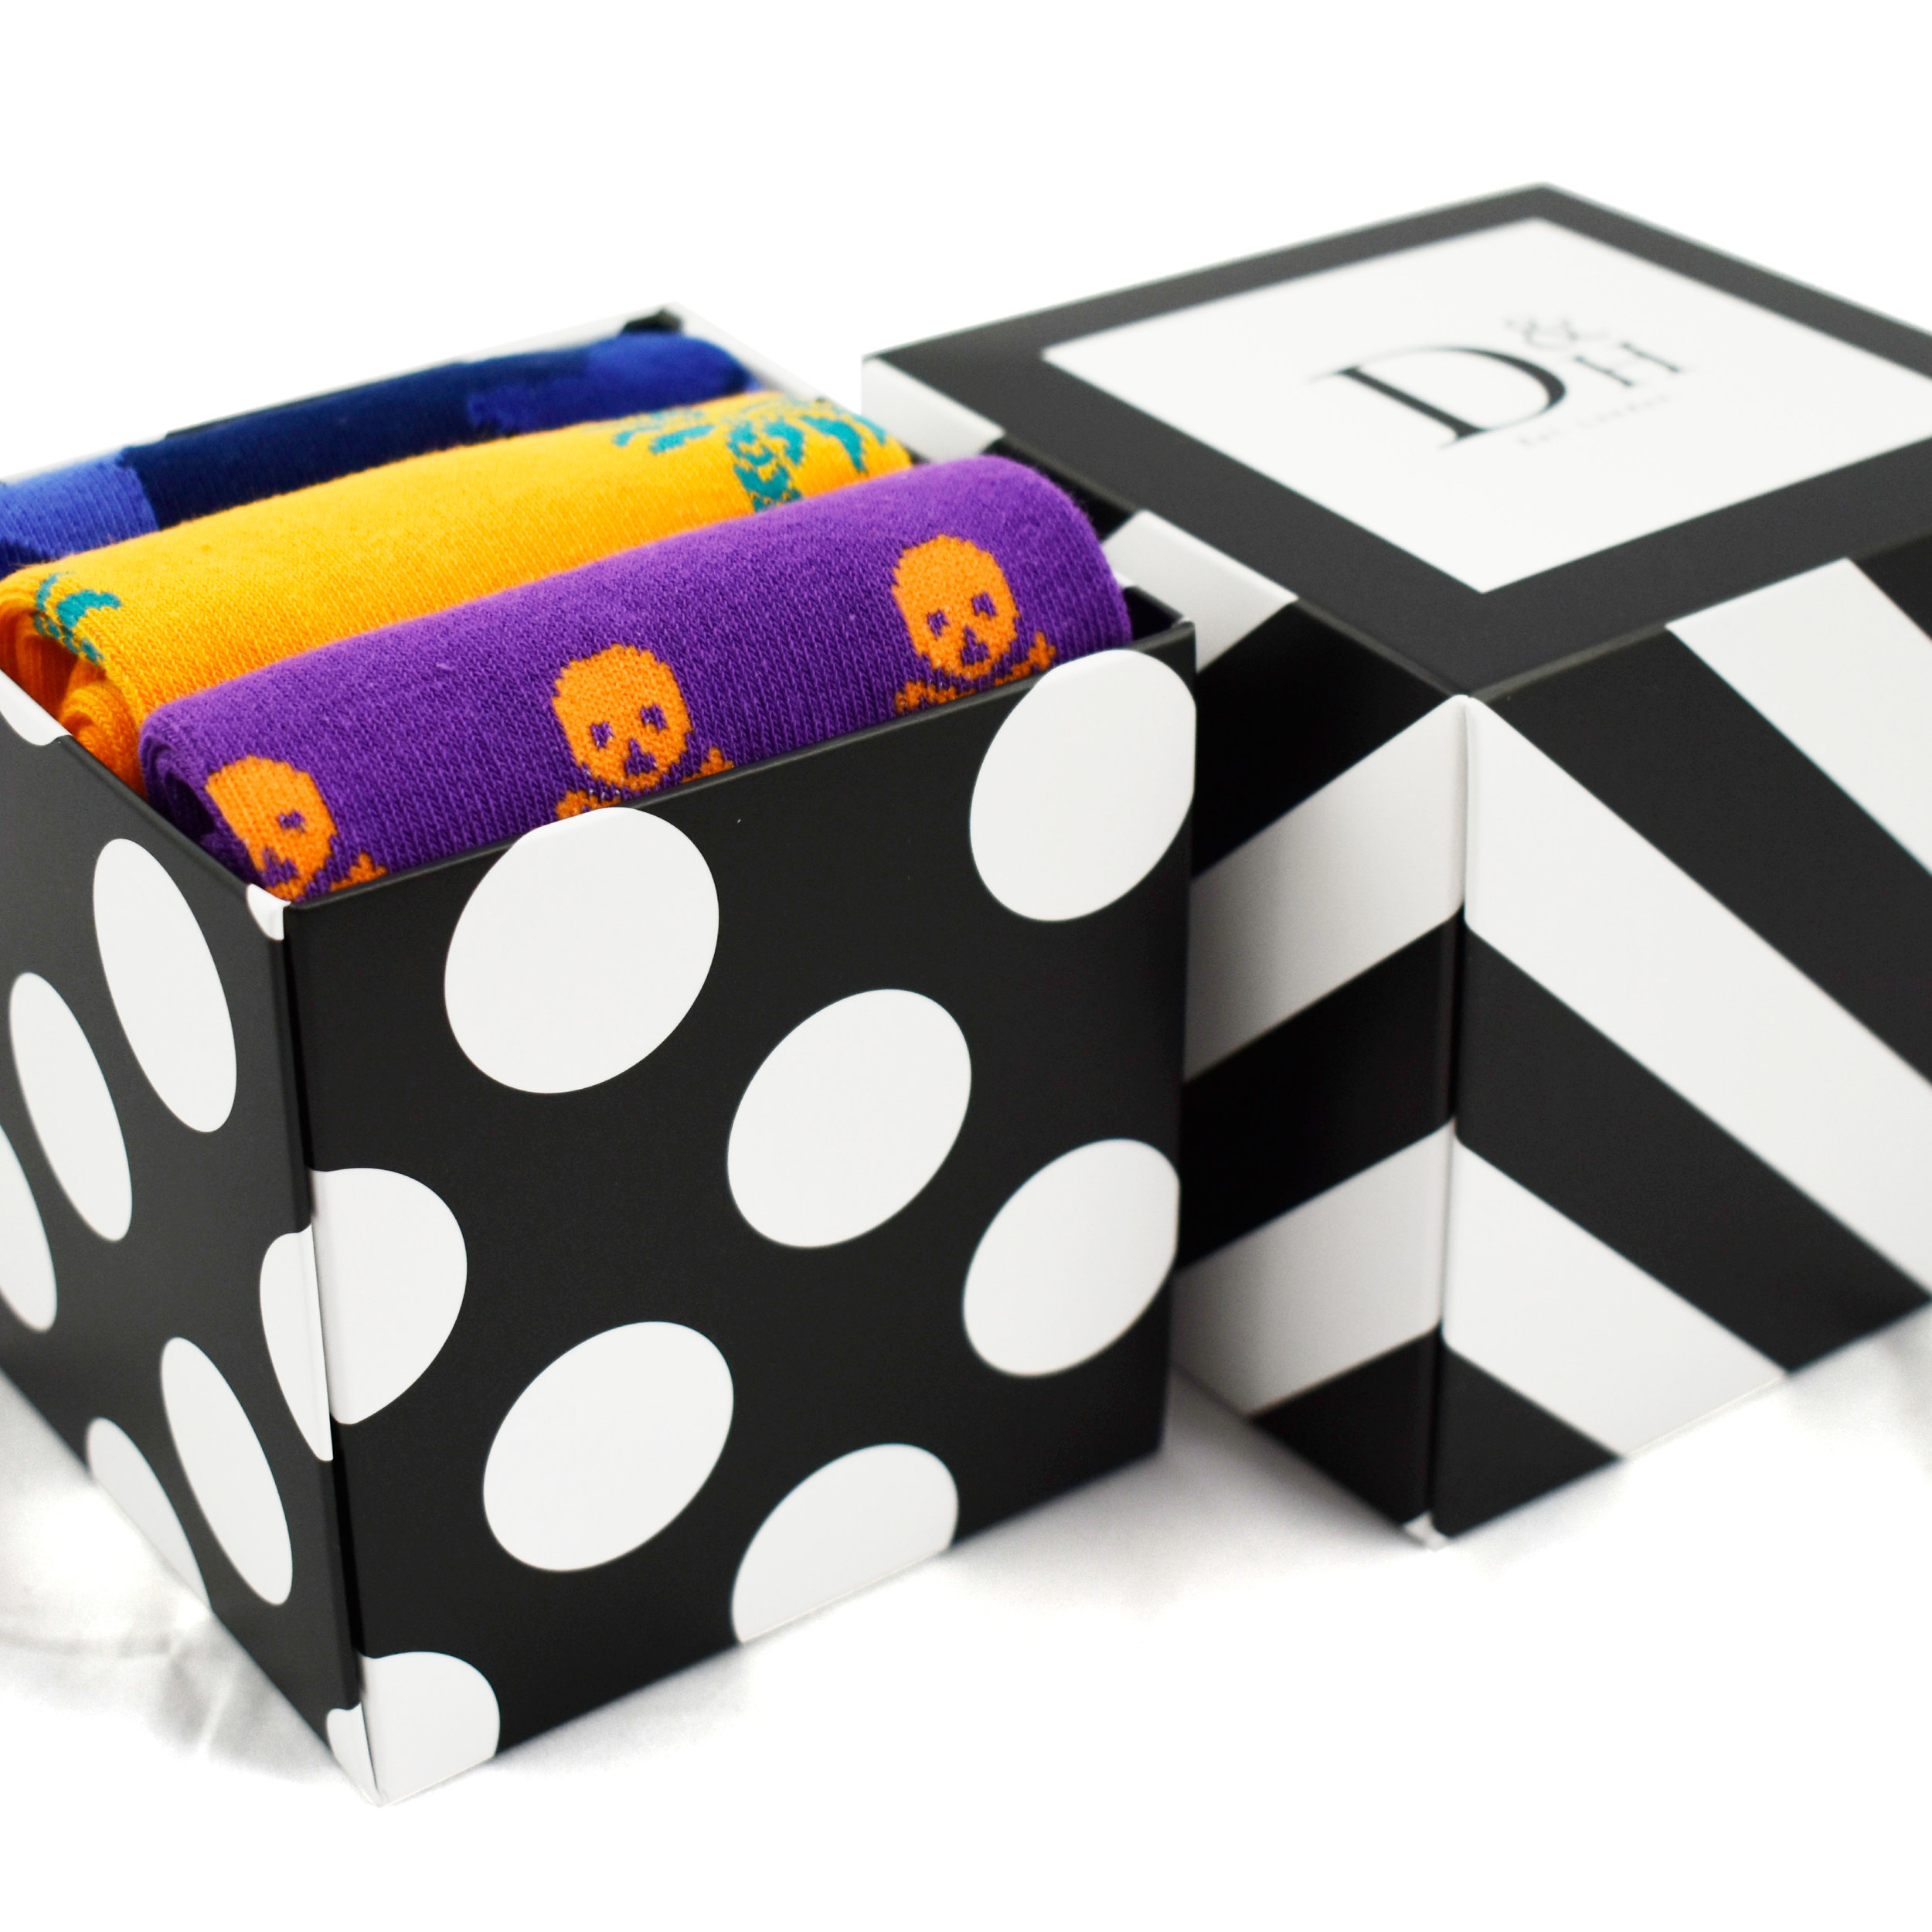 Gift boxes fit up to 3x pair of adult socks per box.